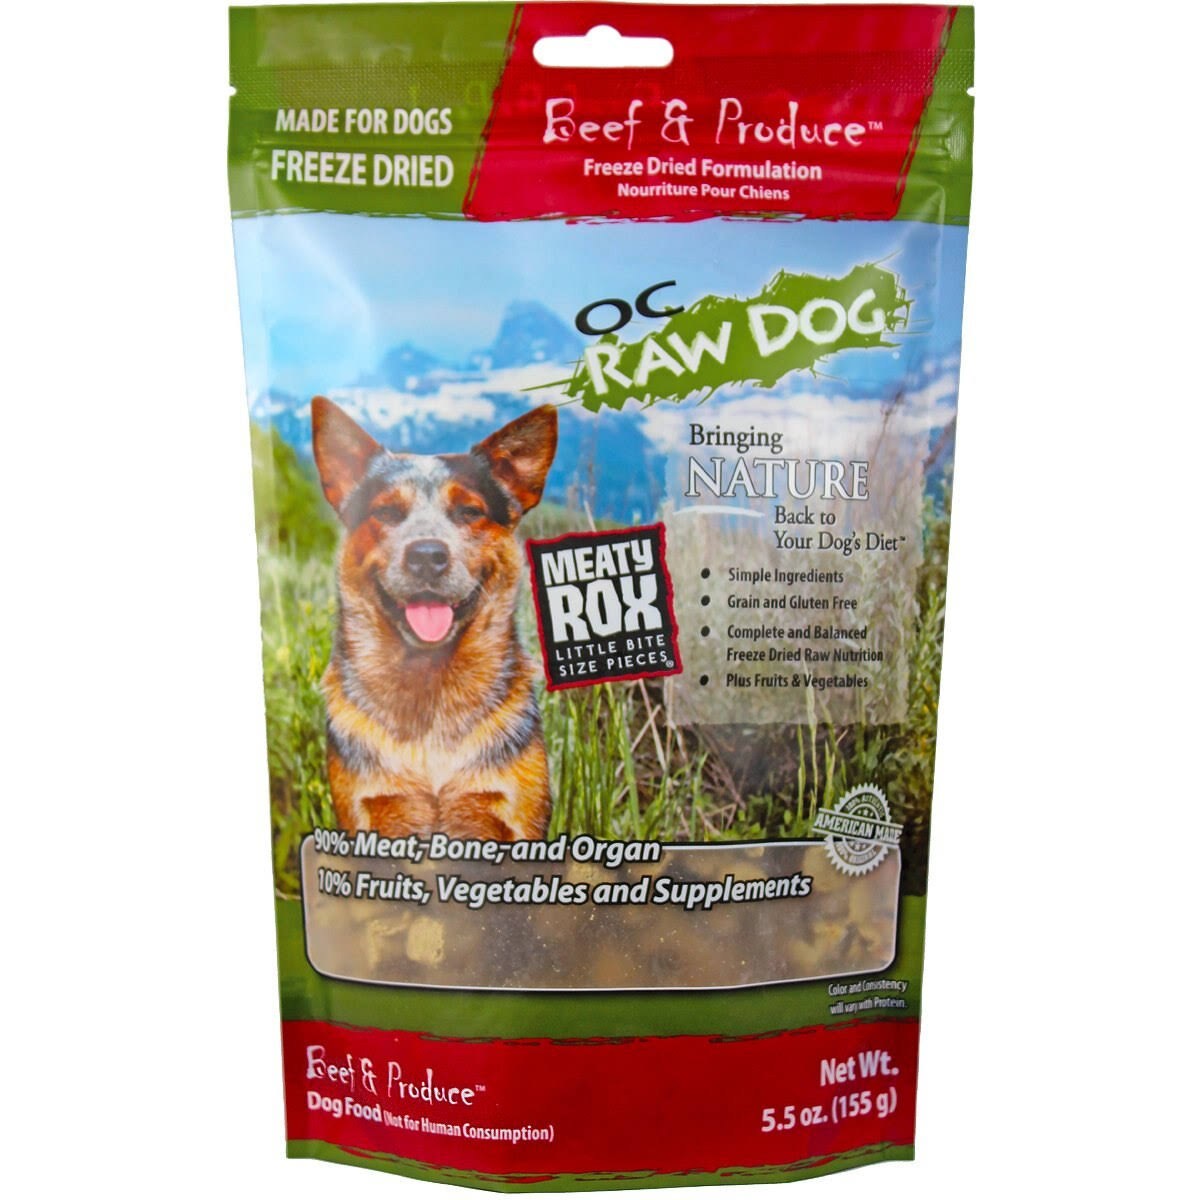 Oc Raw Dog Freeze Dried Meaty Rox Dog Food - Beef, 5.5oz